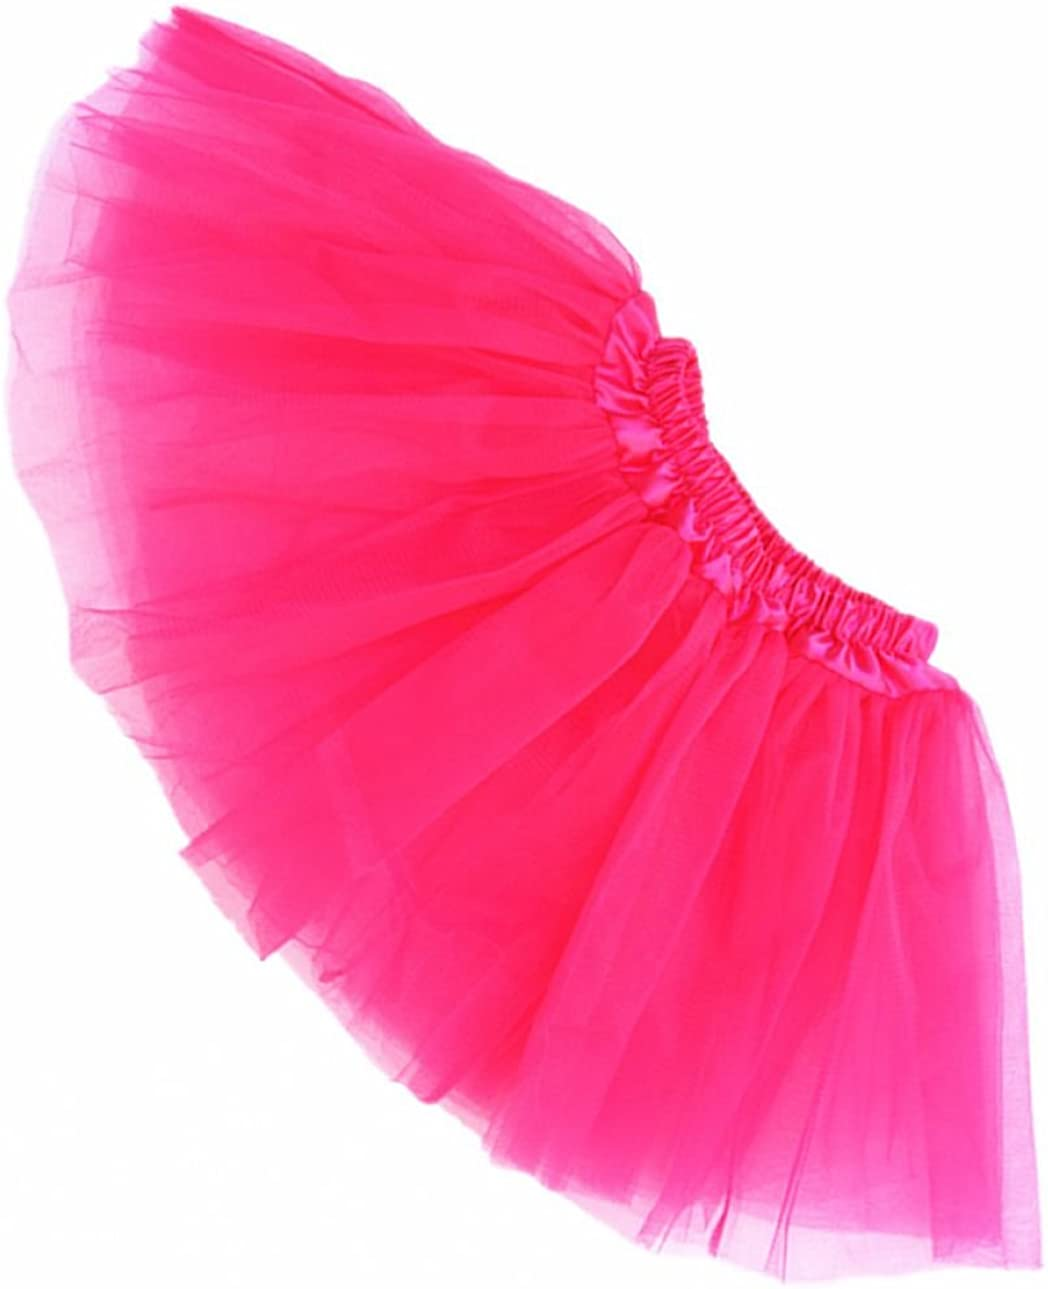 Buenos Ninos Girl's Tutu Assorted Colors Free Size for 3-8T